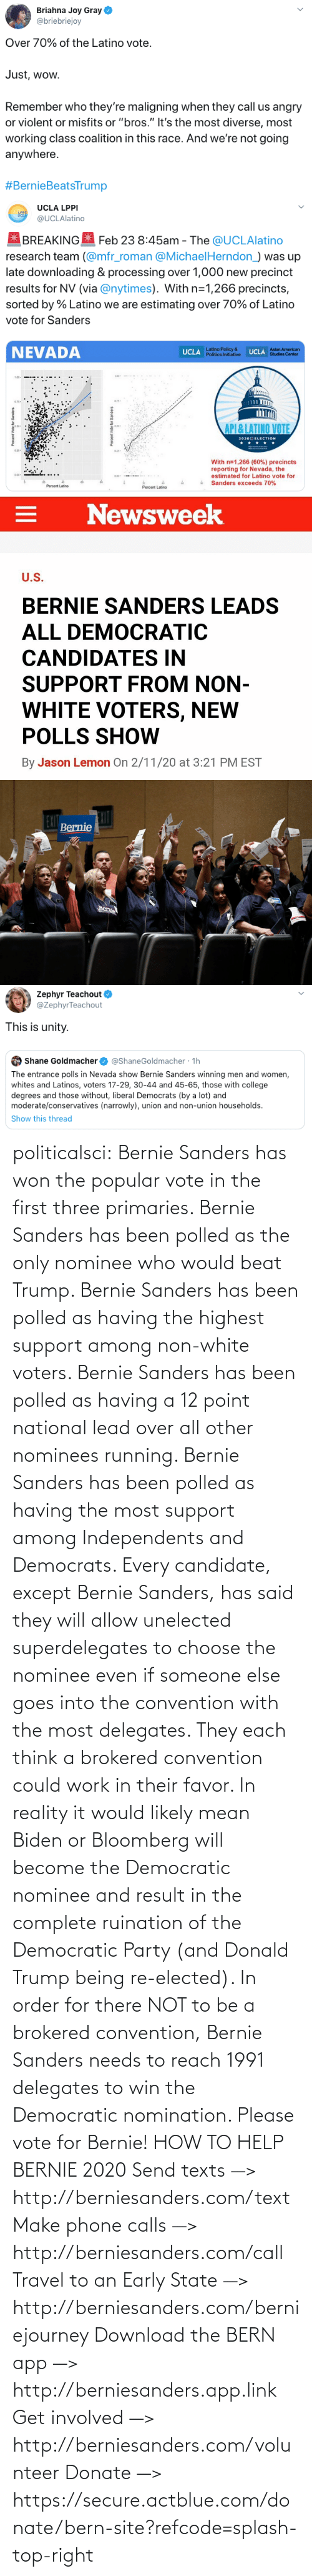 democratic: politicalsci: Bernie Sanders has won the popular vote in the first three primaries. Bernie Sanders has  been polled as the only nominee who would beat Trump. Bernie Sanders  has been polled as having the highest support among non-white voters.  Bernie Sanders has been polled as having a 12 point national lead over  all other nominees running. Bernie Sanders has been polled as having the most support among Independents and Democrats.  Every candidate, except Bernie Sanders, has said they will allow  unelected superdelegates to choose the nominee even if someone else goes  into the convention with the most delegates. They each think a brokered  convention could work in their favor. In  reality it would likely mean Biden or Bloomberg will become the  Democratic nominee and result in the complete ruination of the  Democratic Party (and Donald Trump being re-elected). In order for there  NOT to be a brokered  convention, Bernie Sanders needs to reach 1991 delegates to win the  Democratic  nomination. Please vote for Bernie!  HOW TO HELP BERNIE 2020 Send texts —> http://berniesanders.com/text  Make phone calls —> http://berniesanders.com/call  Travel to an Early State —> http://berniesanders.com/berniejourney  Download the BERN app —> http://berniesanders.app.link  Get involved —> http://berniesanders.com/volunteer Donate —> https://secure.actblue.com/donate/bern-site?refcode=splash-top-right